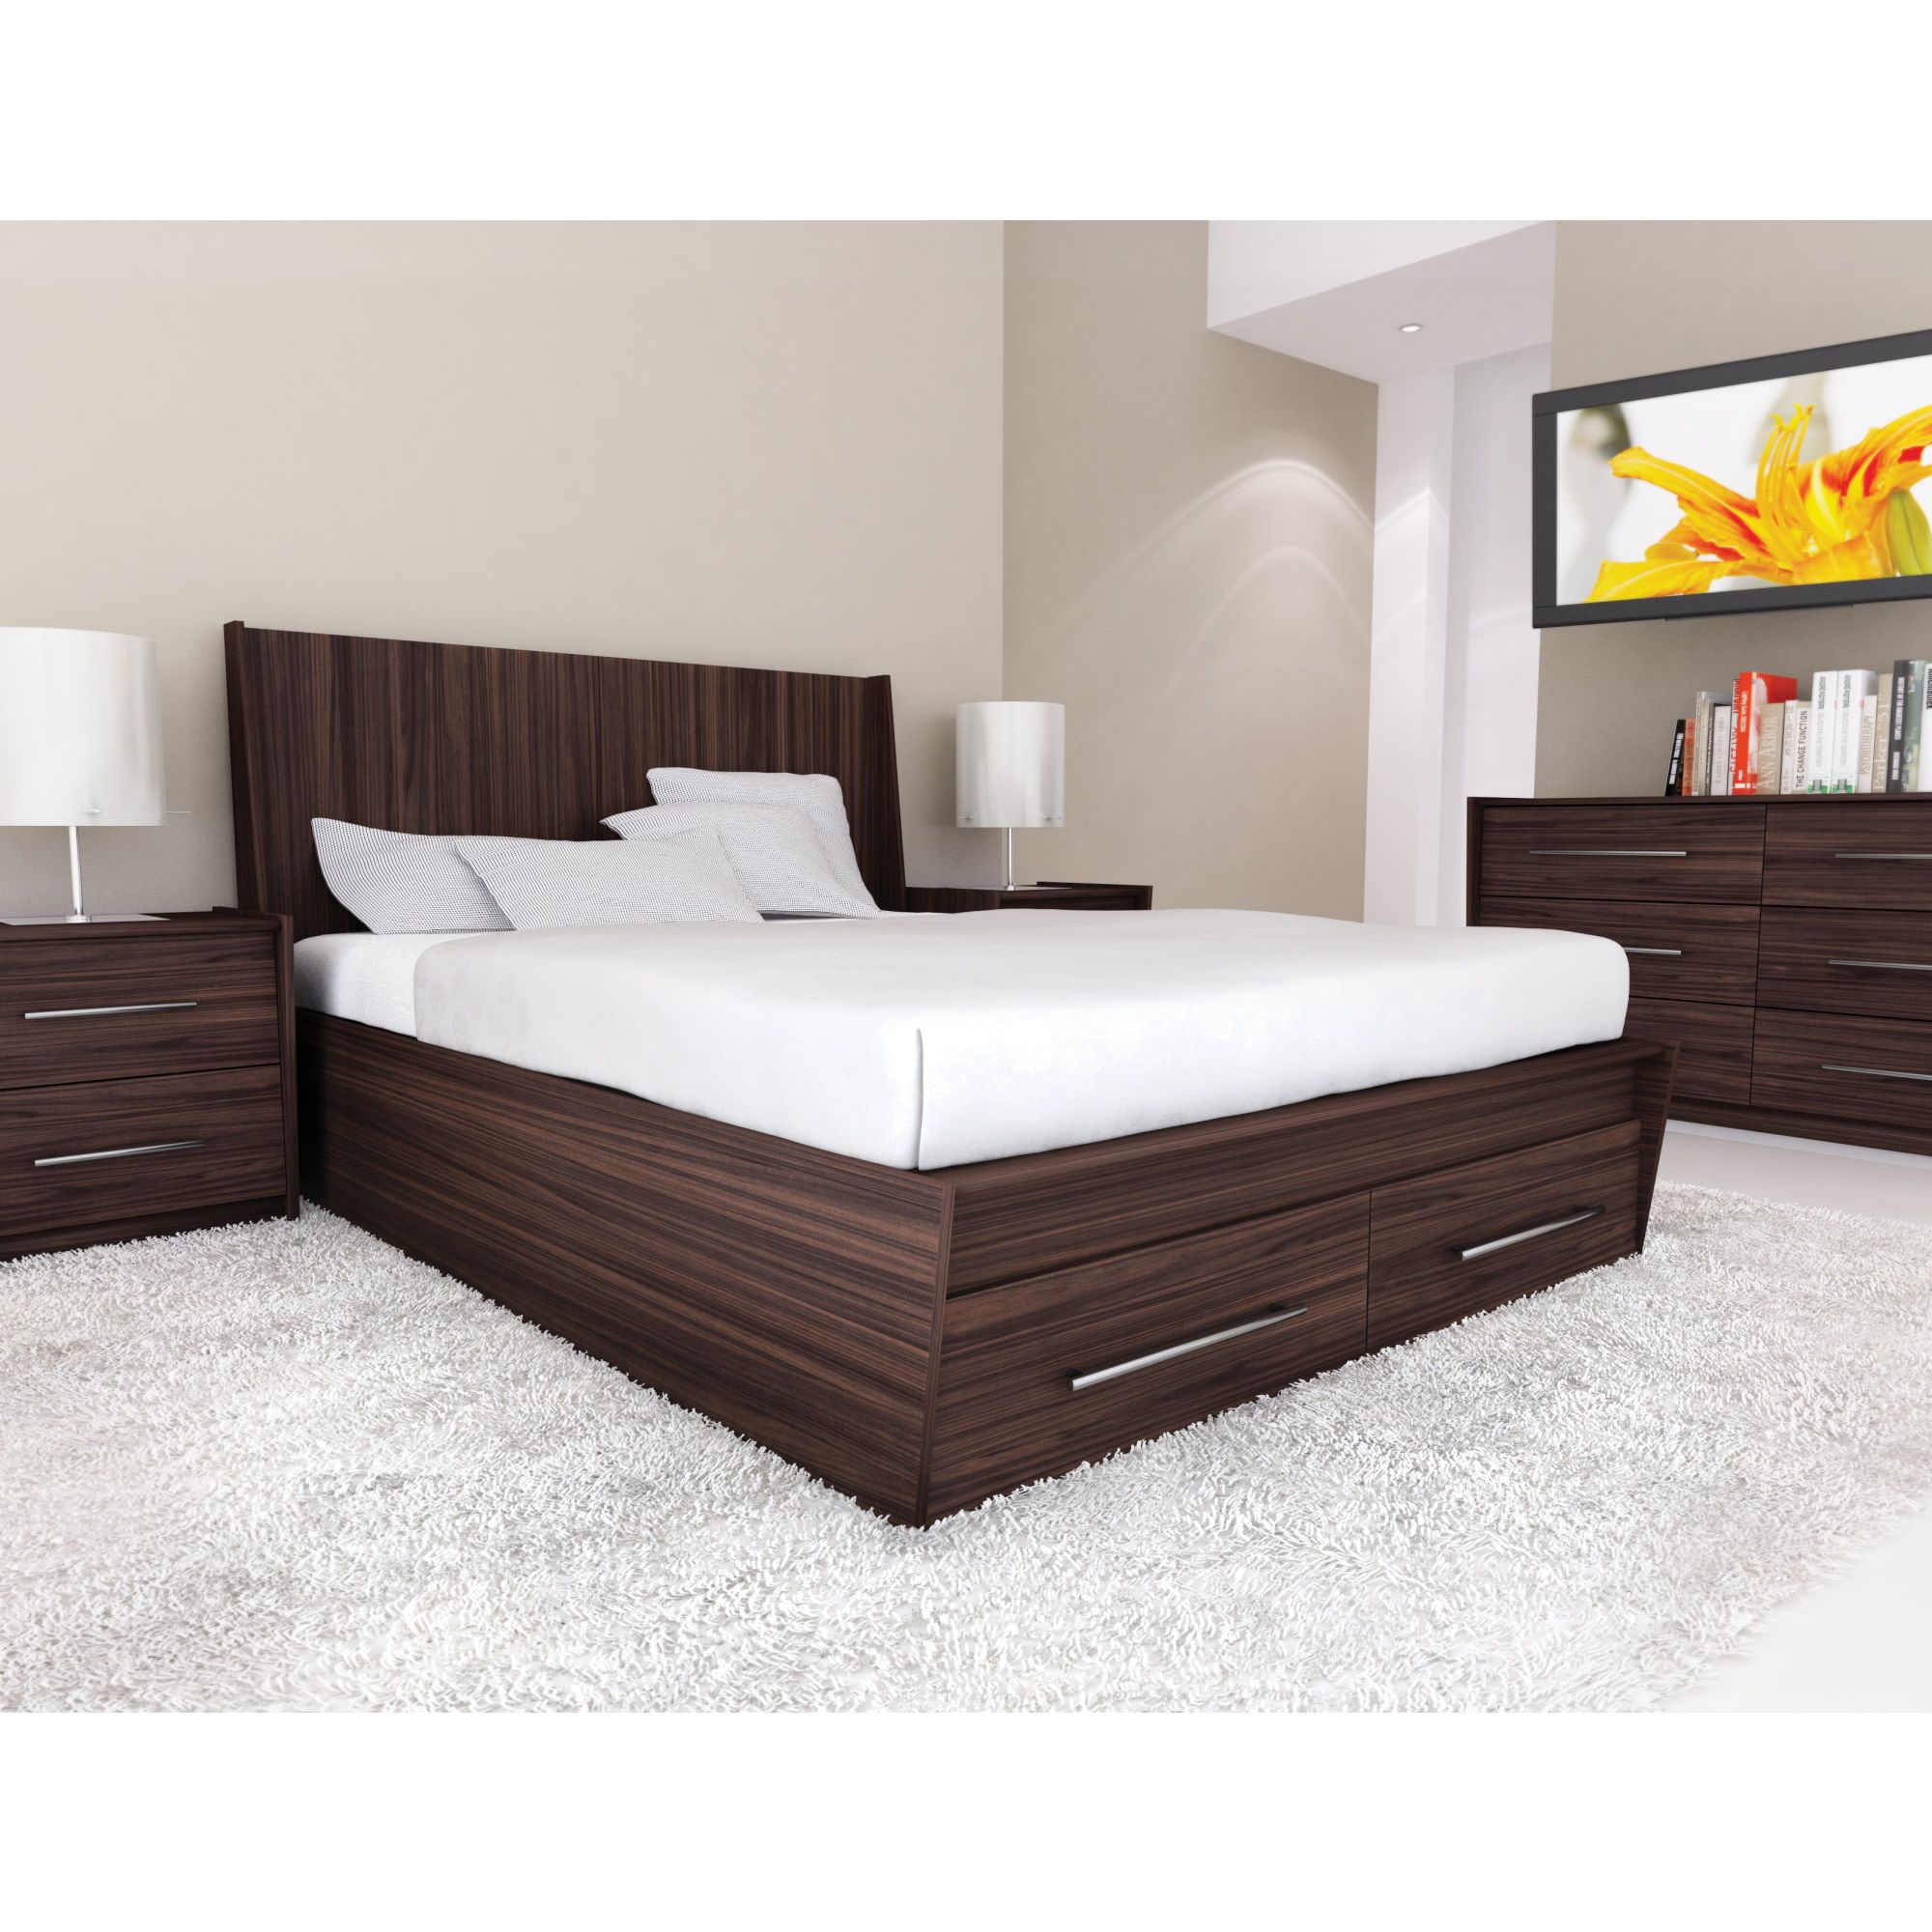 Double bed designs in wood - Bed Designs For Your Comfortable Bedroom Interior Design Ideas Wooden Double Bed Designs For Homes With